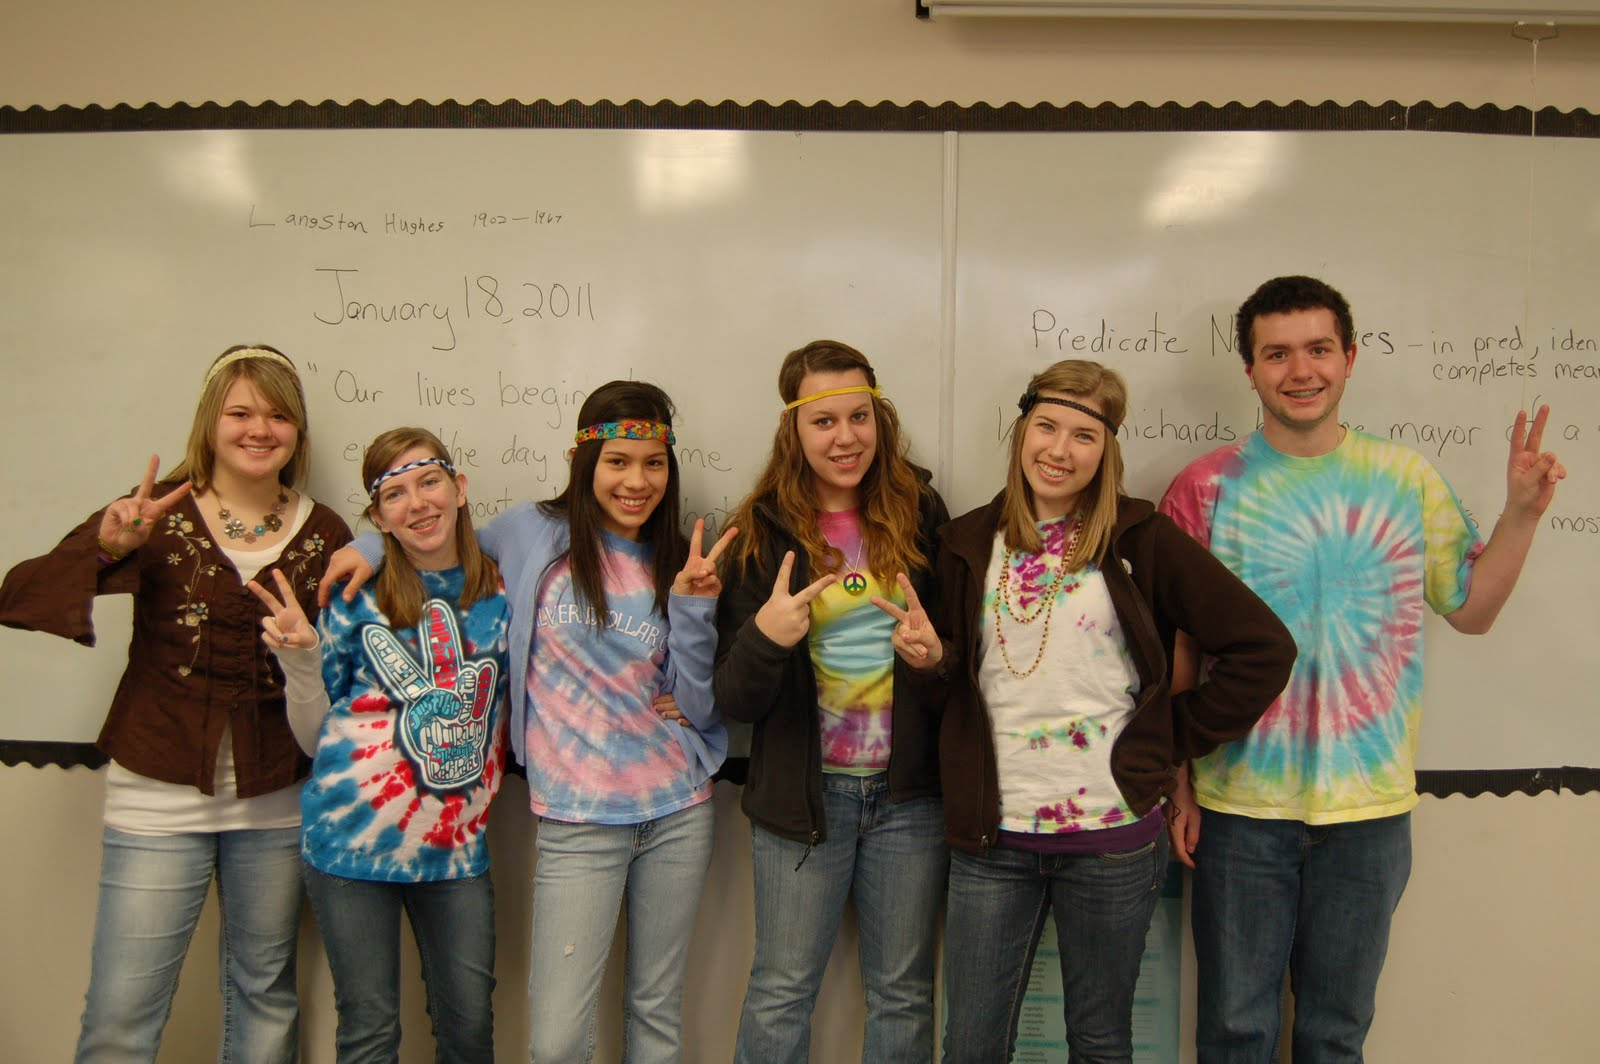 Decade Day Ideas http://wrightchristianacademy.blogspot.com/2011/01/homecoming-spirit-week-tuesday-decade.html